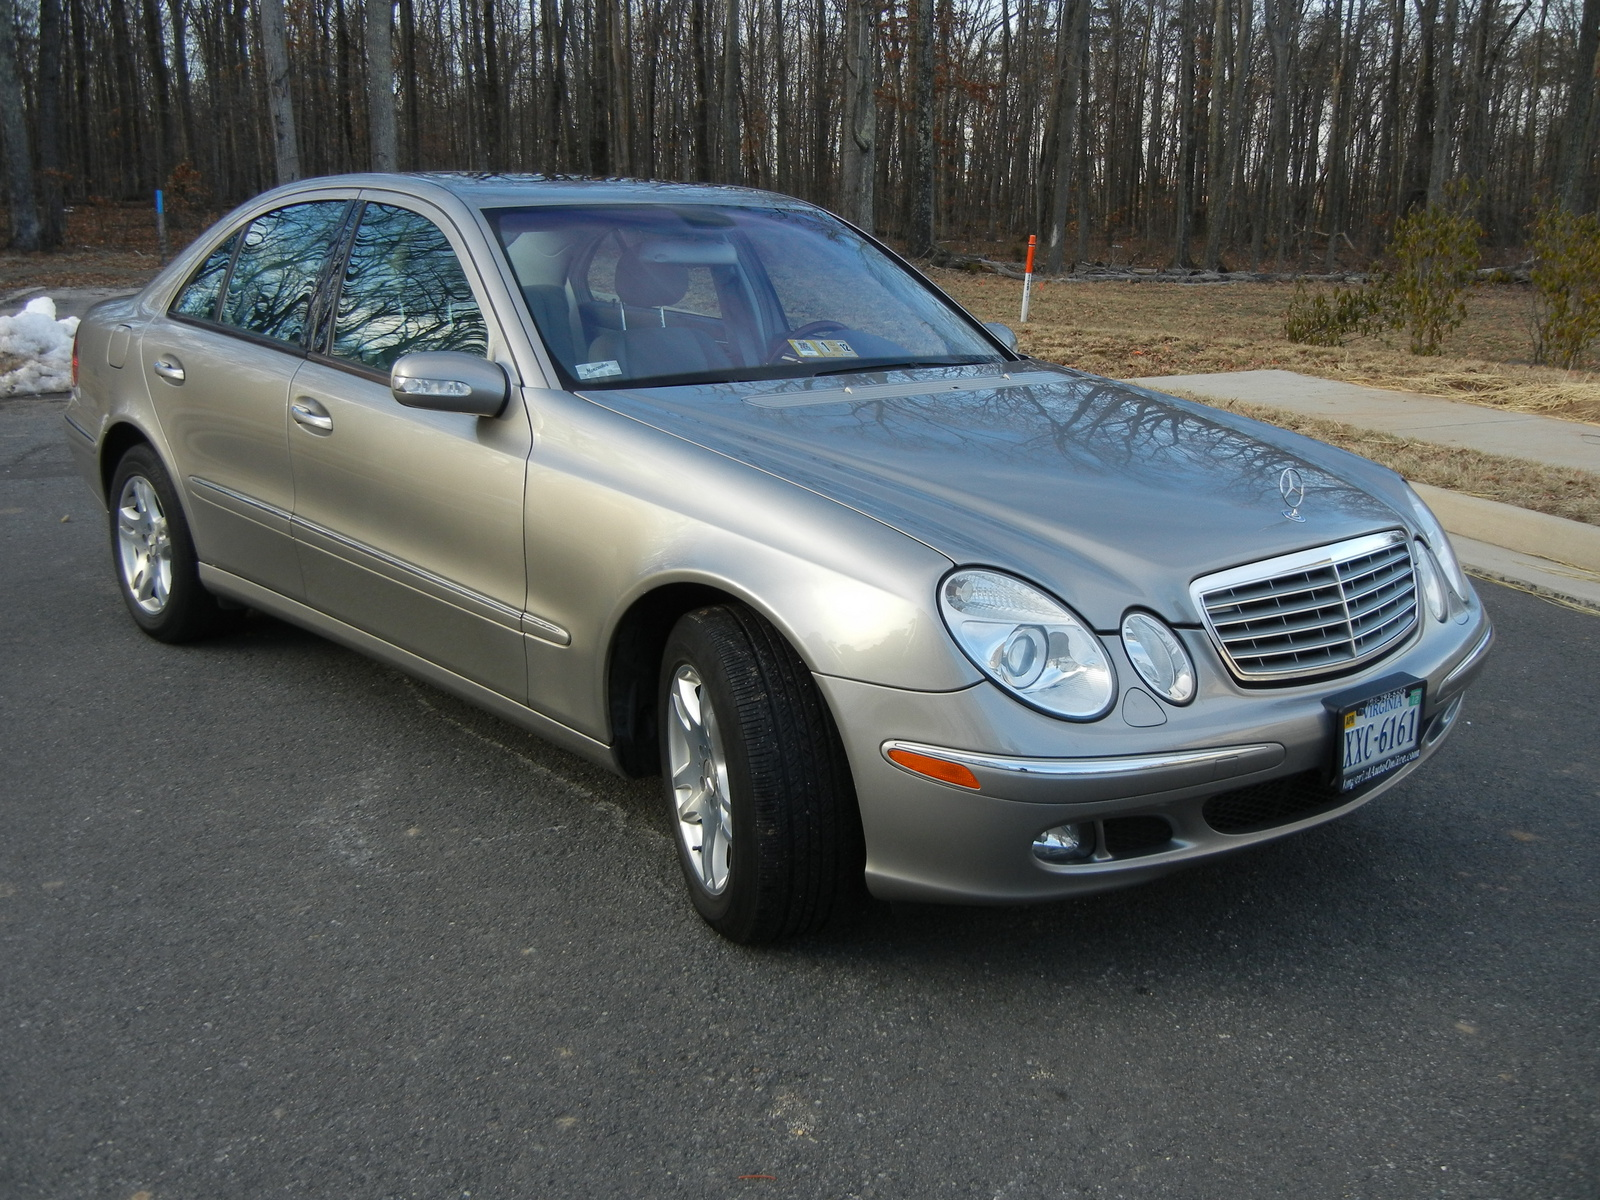 2005 mercedes e class pictures to pin on pinterest pinsdaddy for Mercedes benz e class 2005